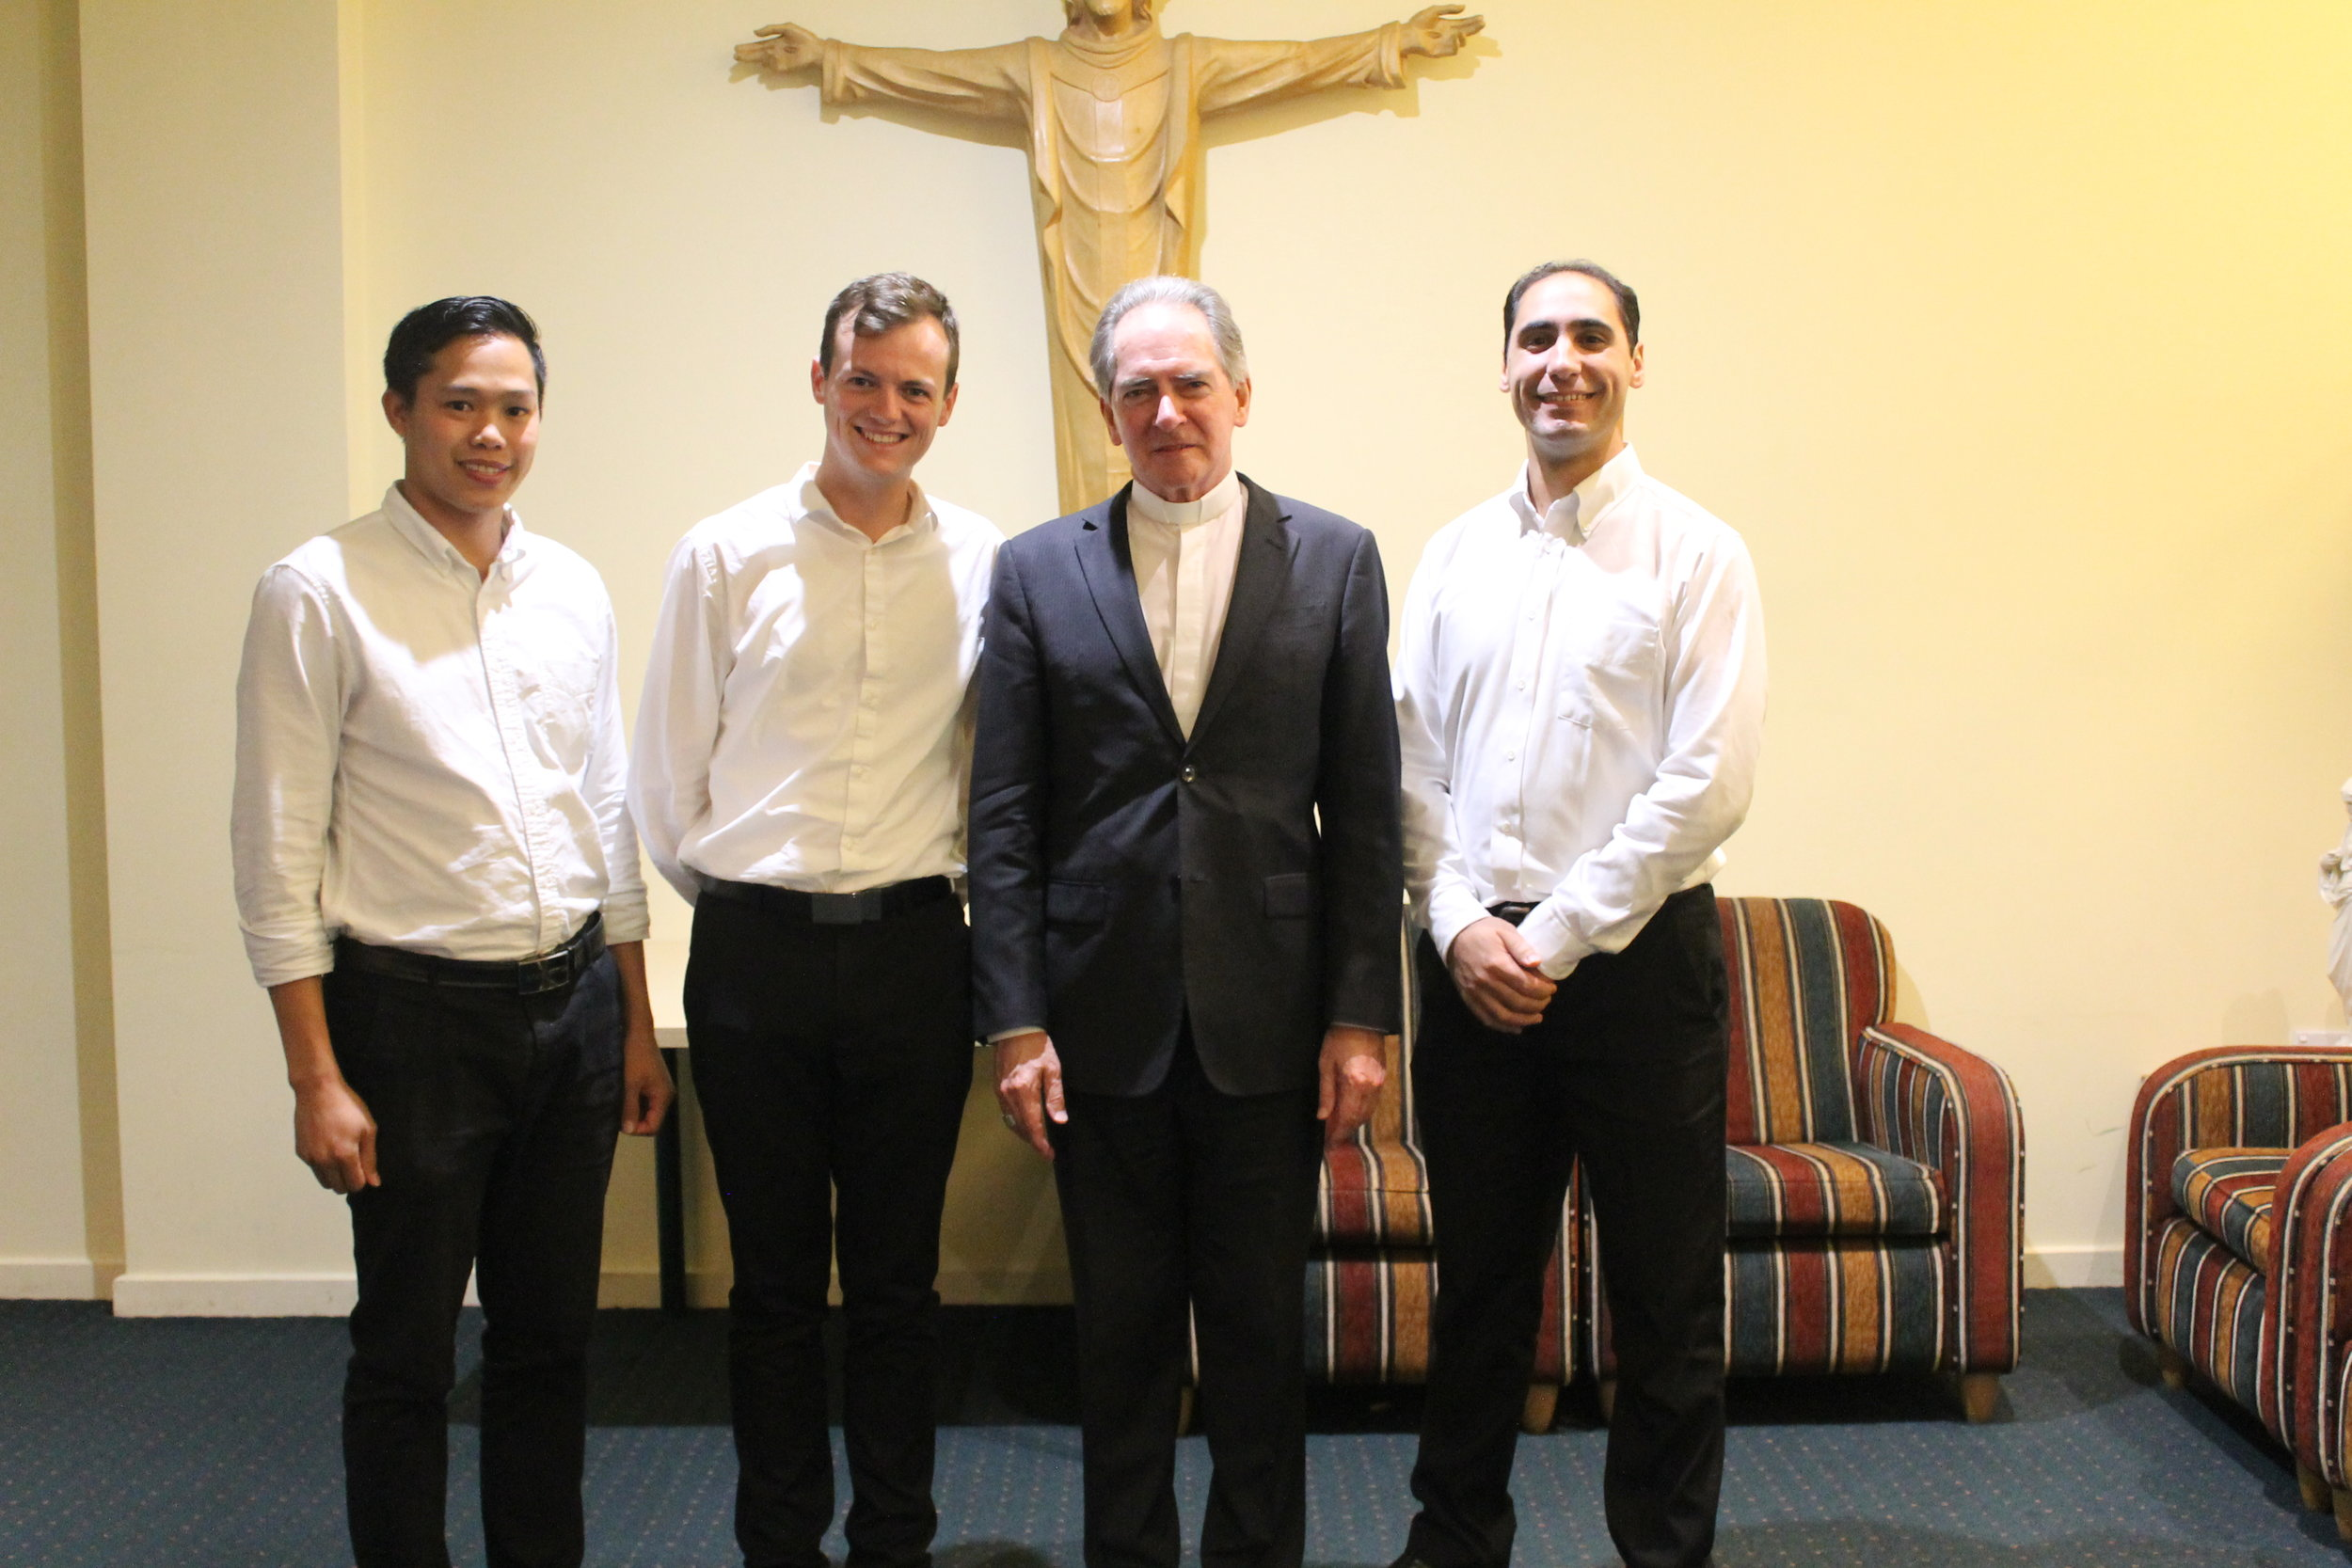 Bishop Paul Bird of Ballarat with his seminarians (from left to right), Peter Cay, Bill Lowry and Matthew Restall.